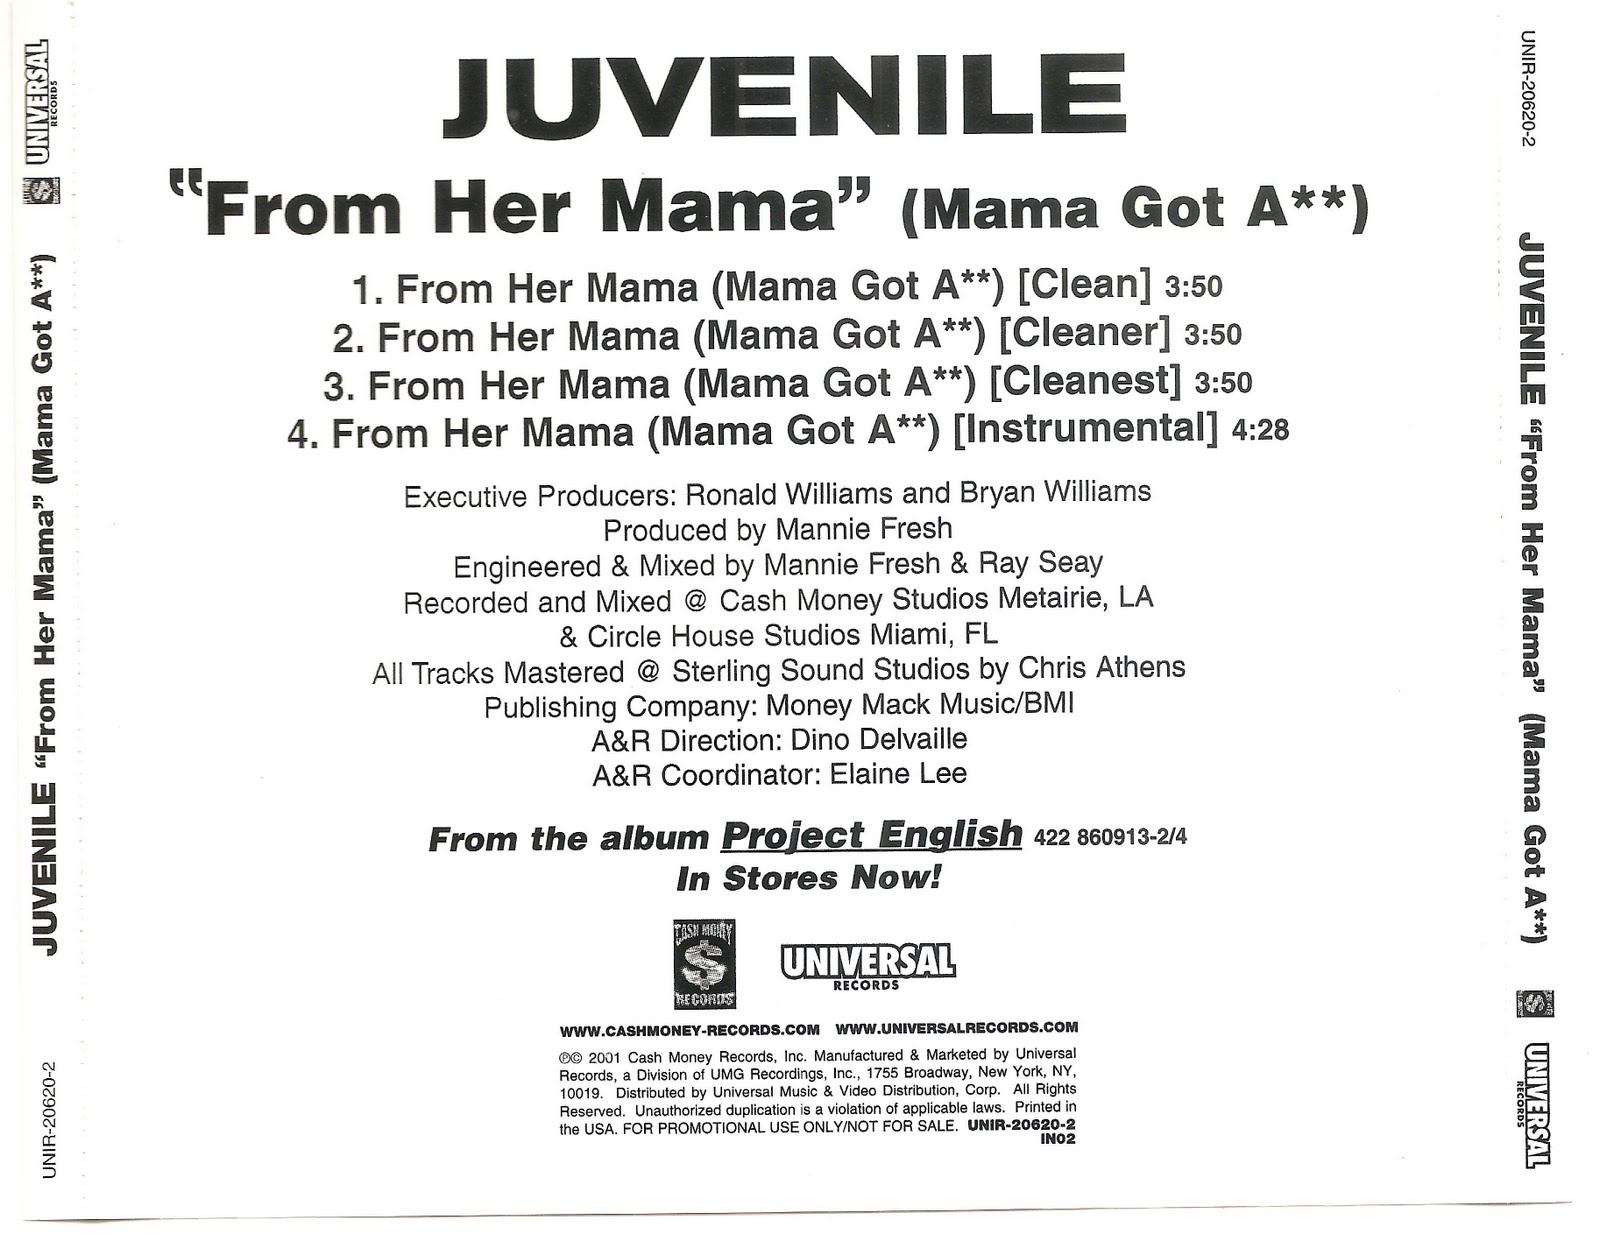 Picture CD: Juvenile-From_Her_Mama-(Promo_CDS)-2001-CDSINGLESV2